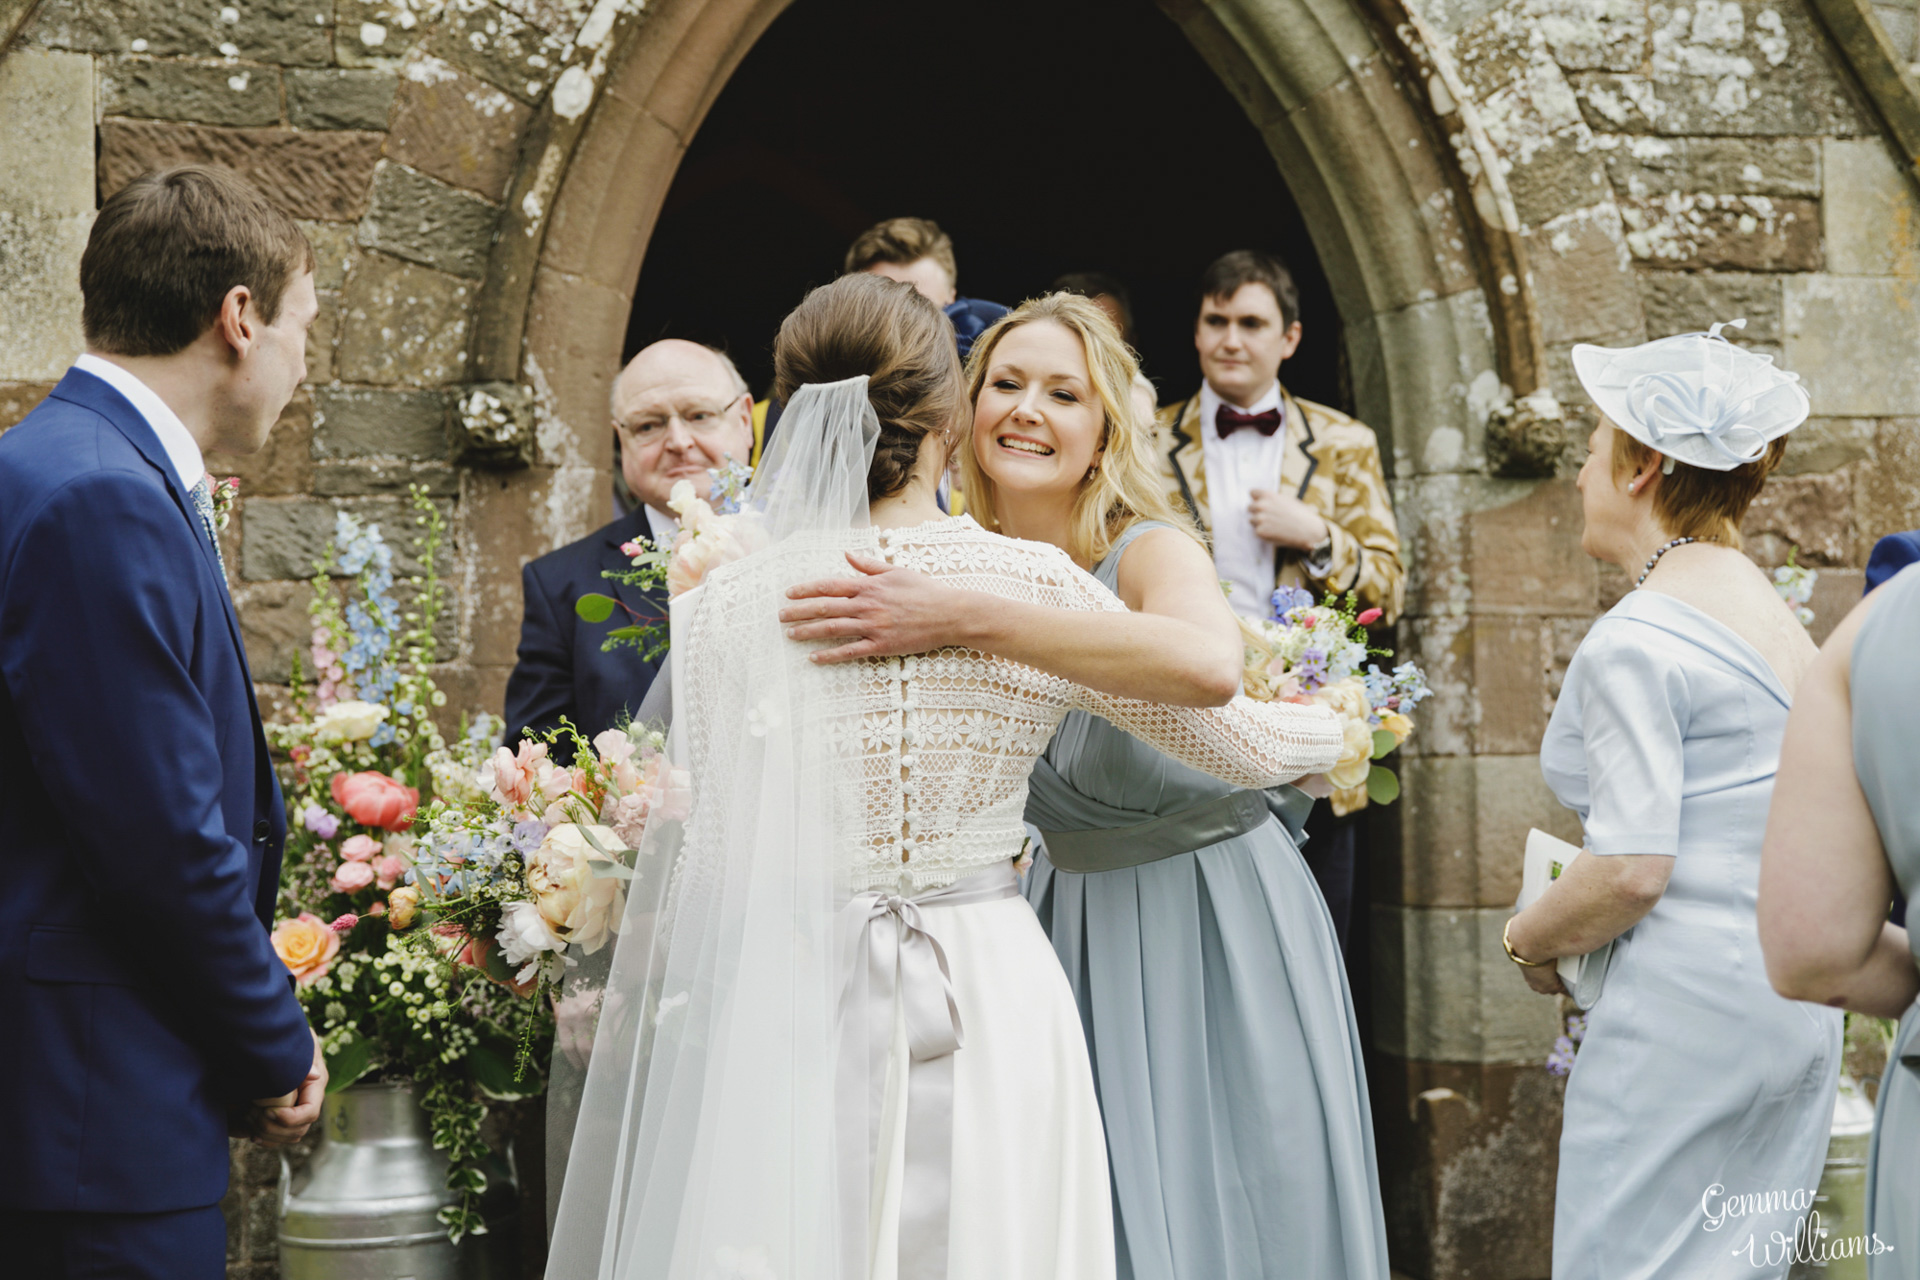 HaybarnWedding_GemmaWilliamsPhoto066.jpg